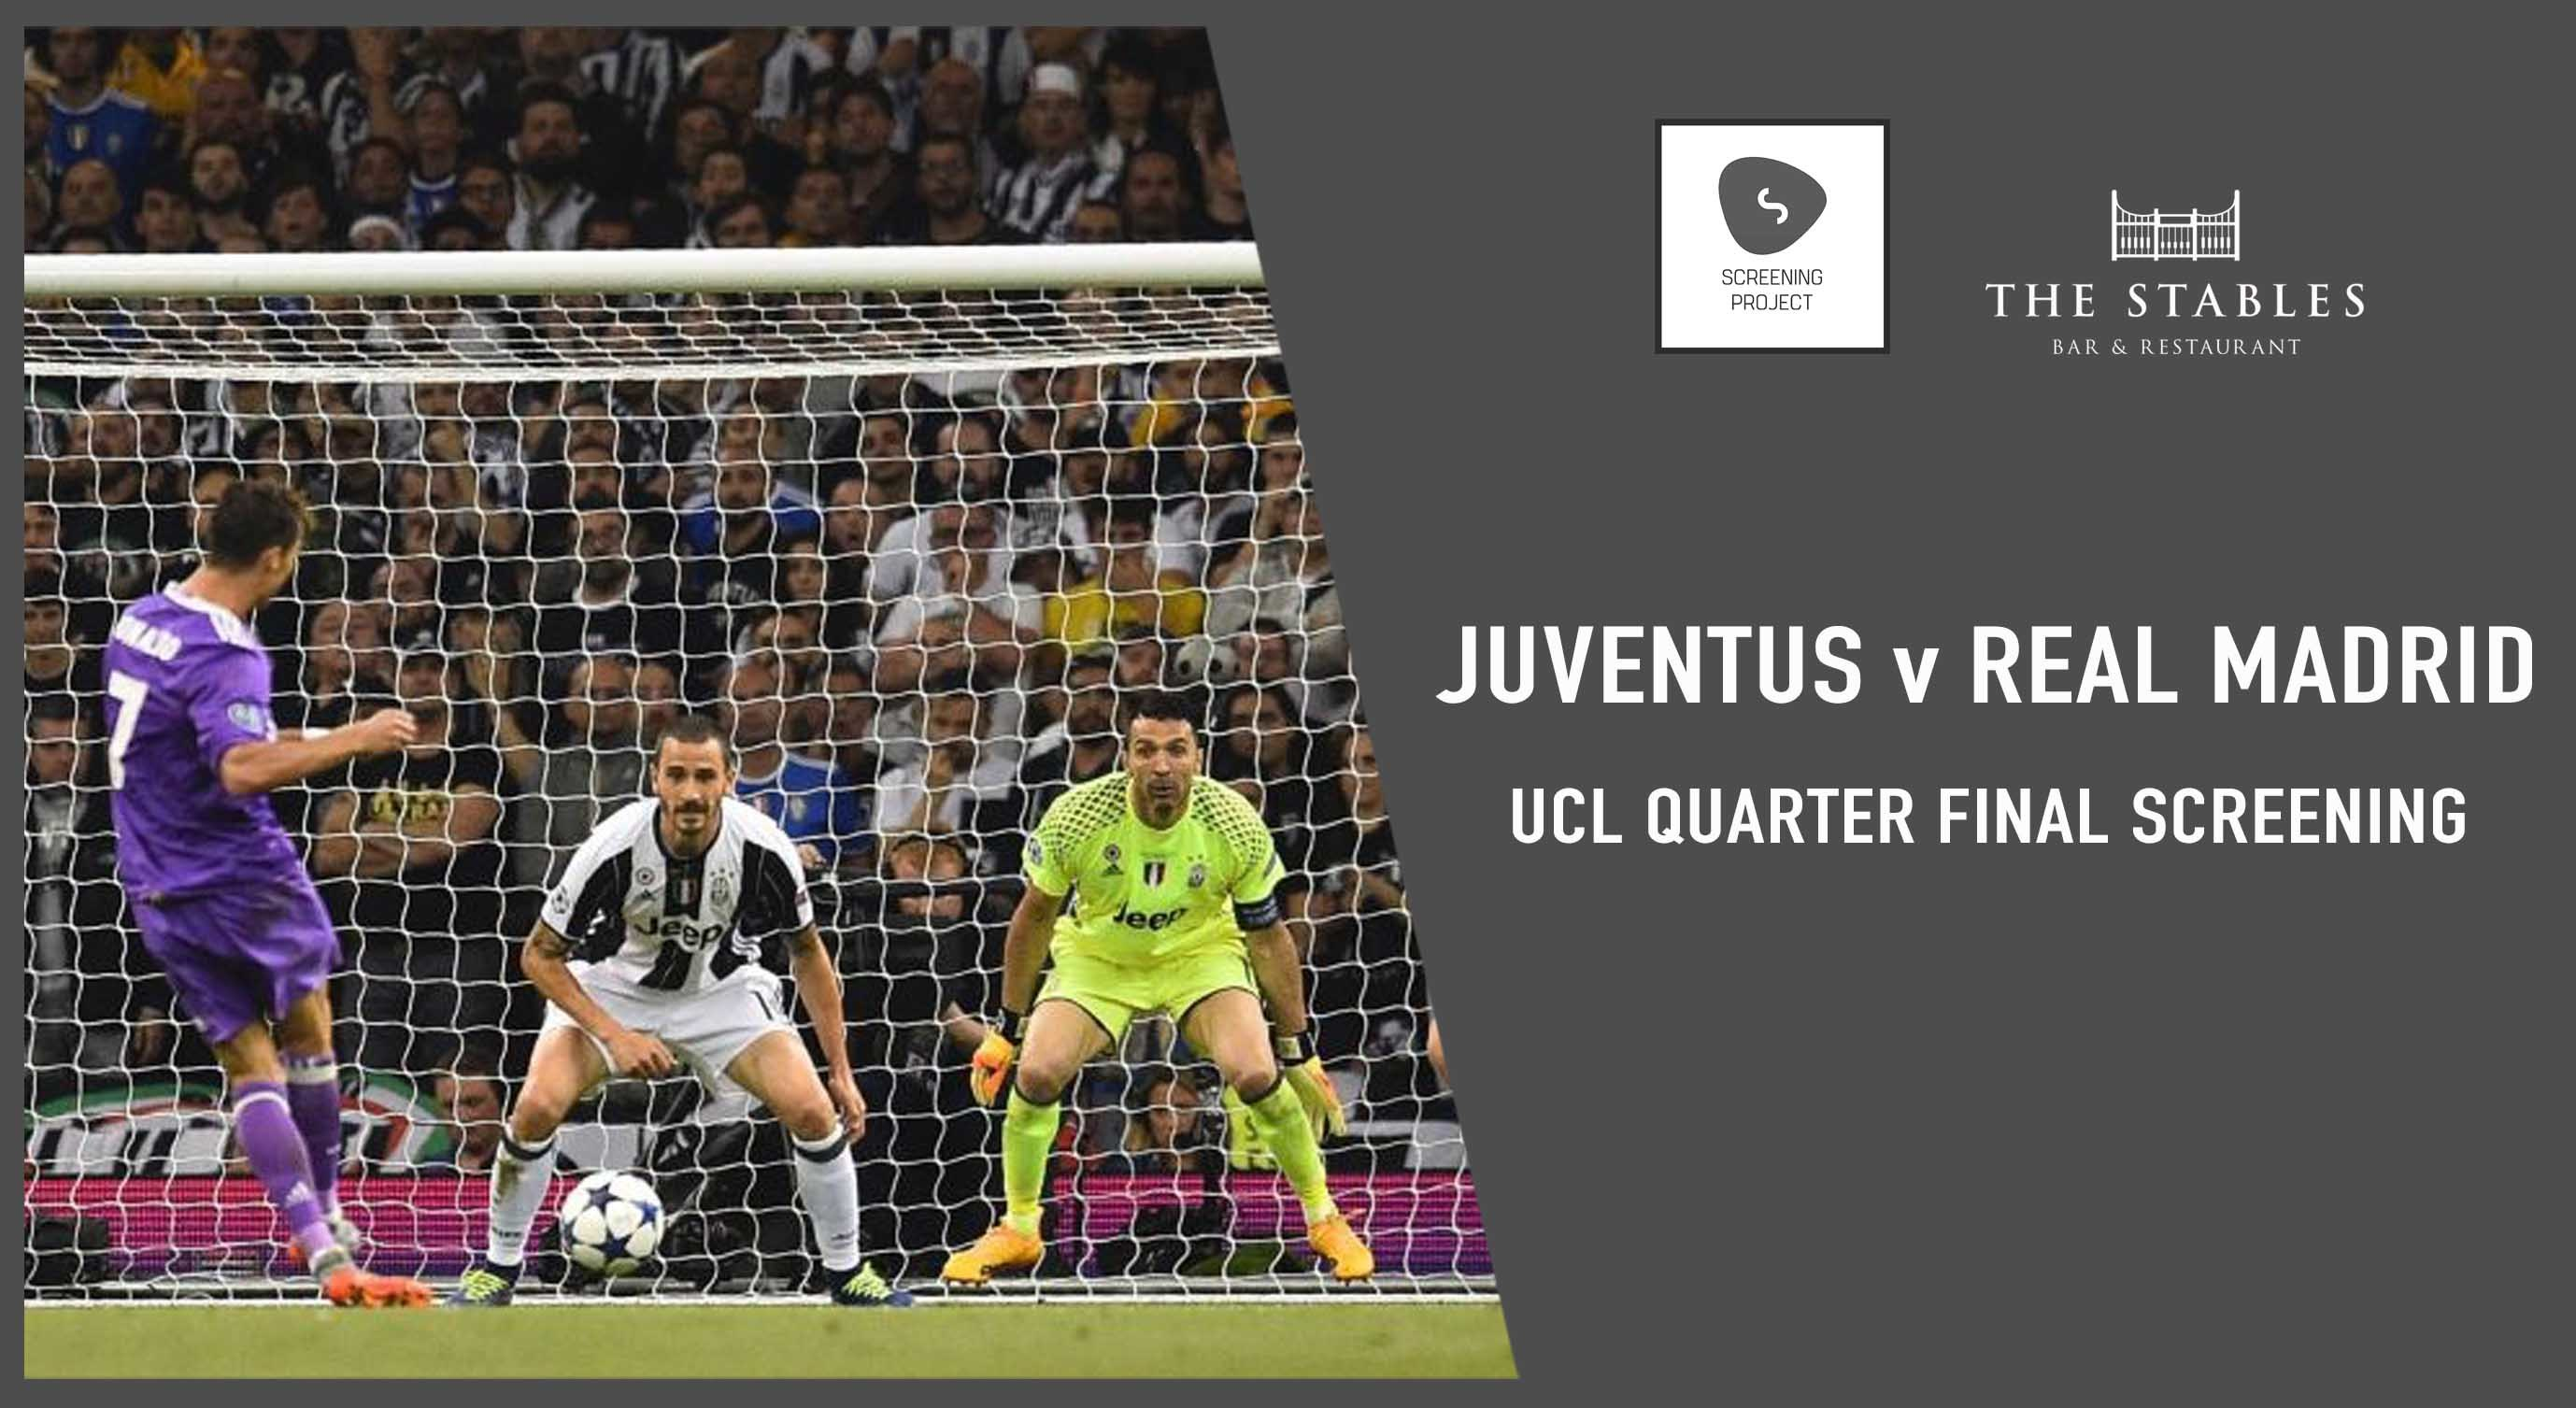 Book tickets to Juventus v Real Madrid UCL QF Screening